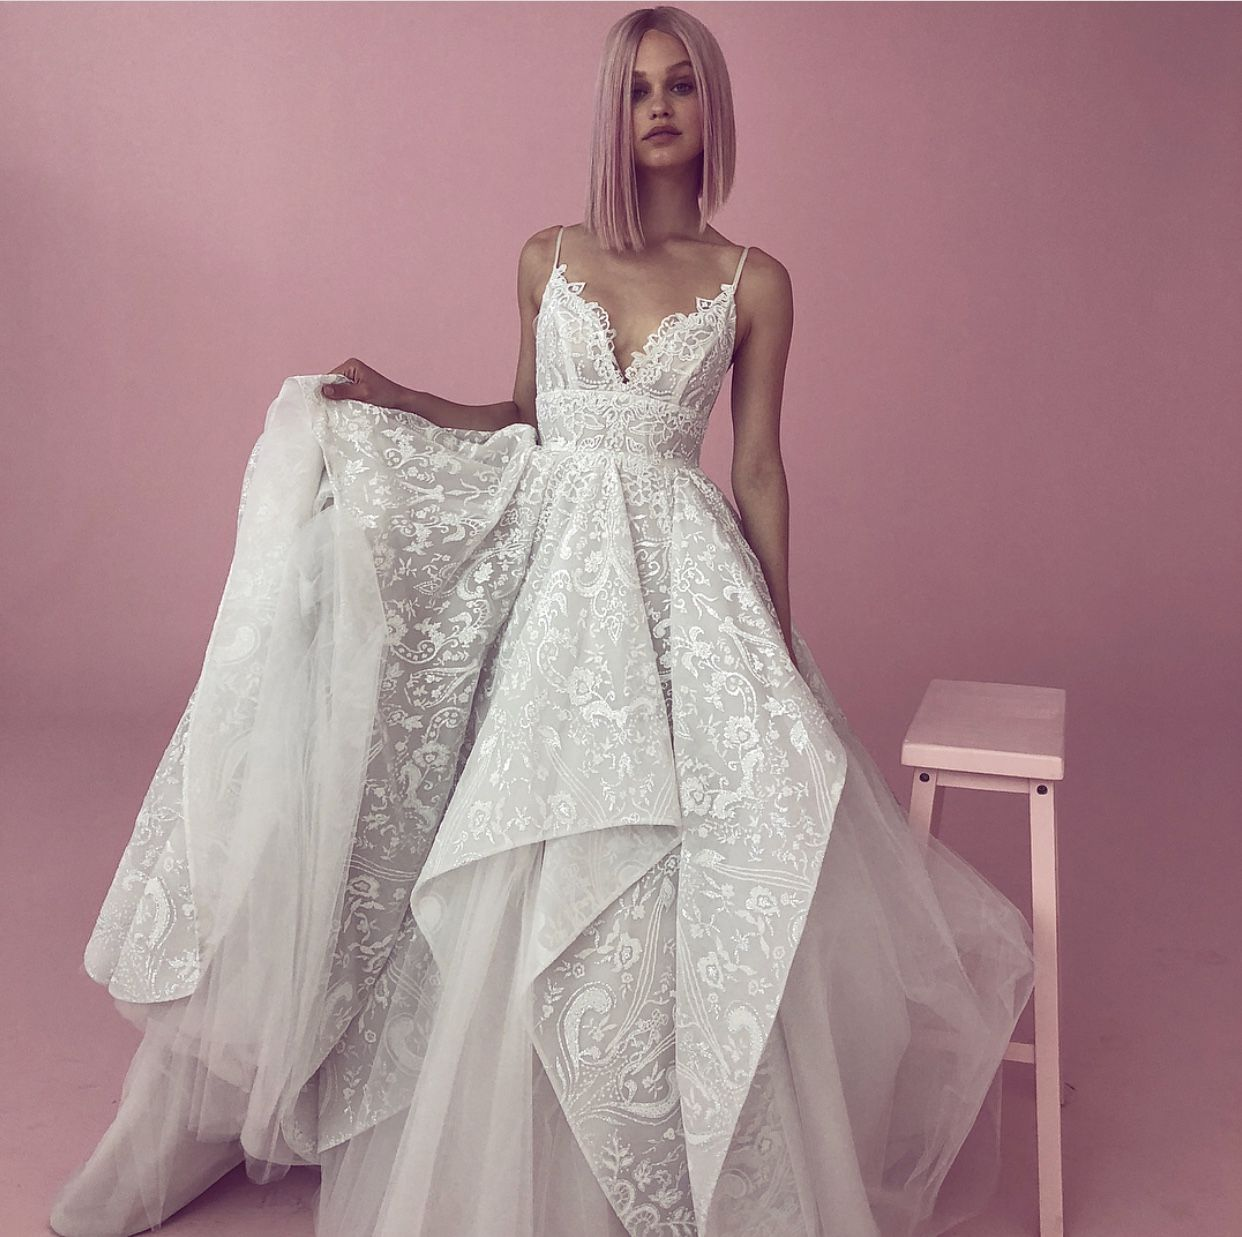 309ddce8e3ef Markle Gown by Hayley Paige. I'm obsessed 😍 | Future wedding plans ...